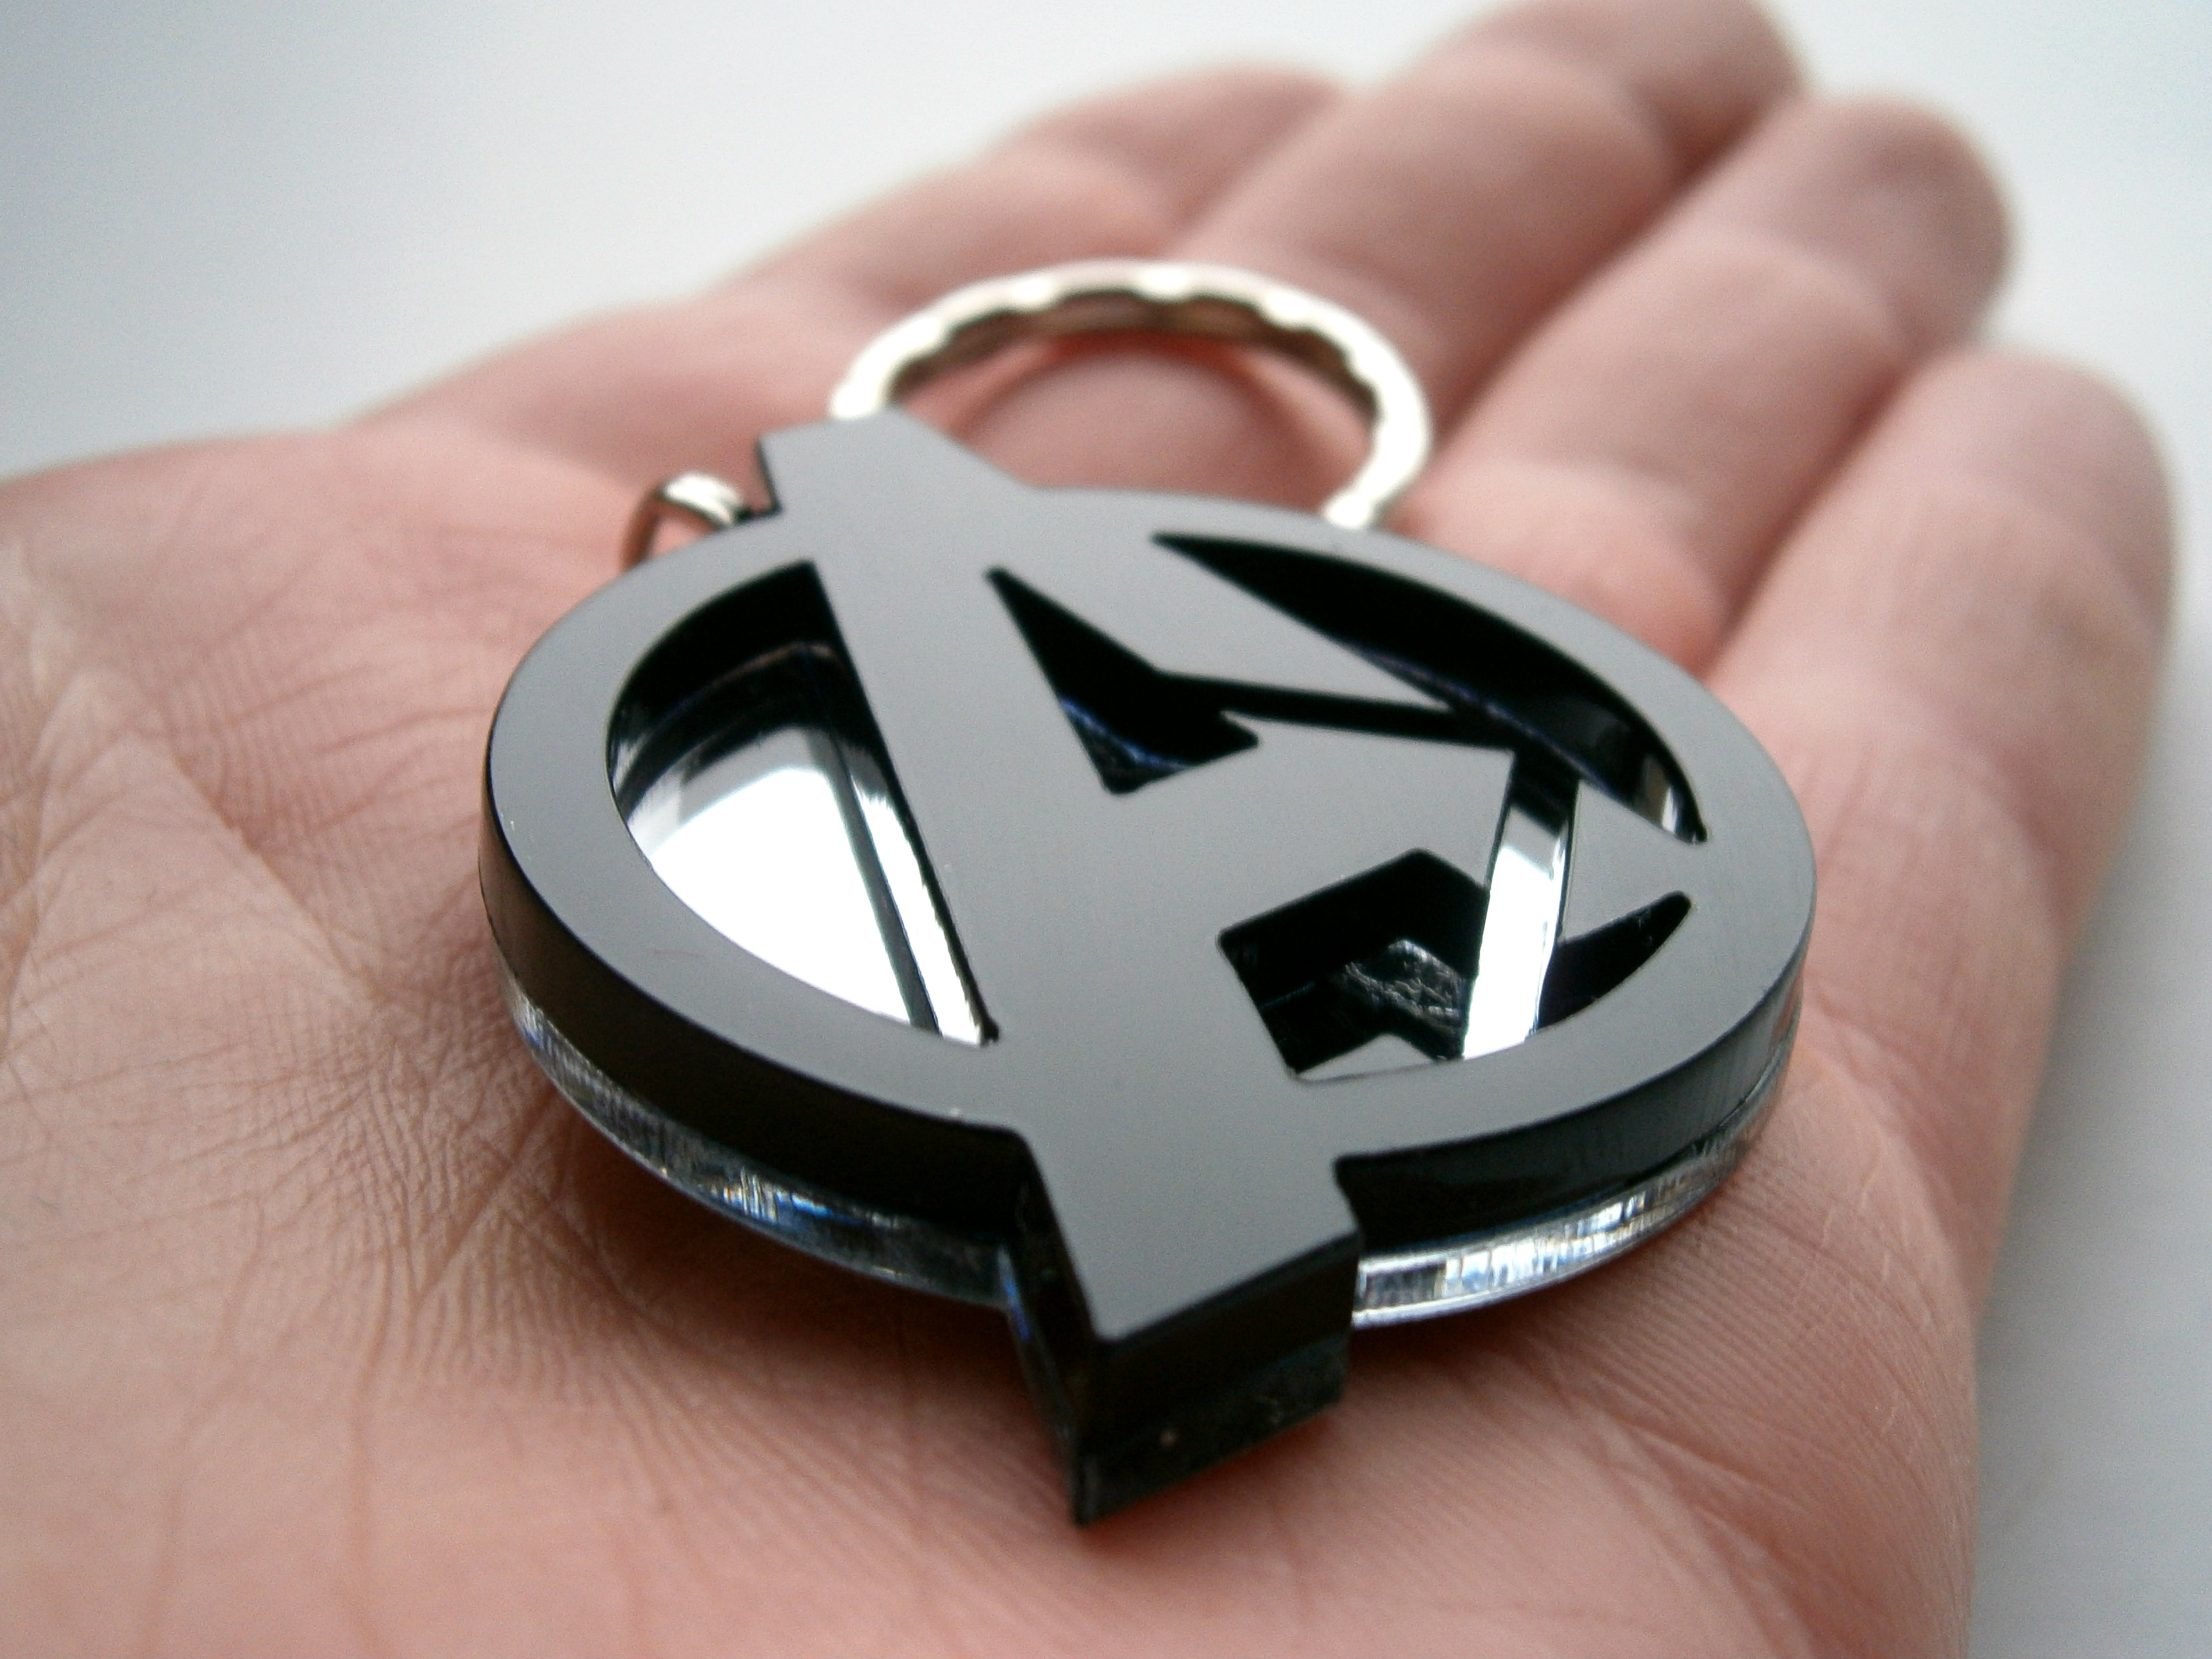 Avengers Necklace, Laser Cut Black and Mirror Avengers Logo Pendant Necklace - Laser Cut Jewelry